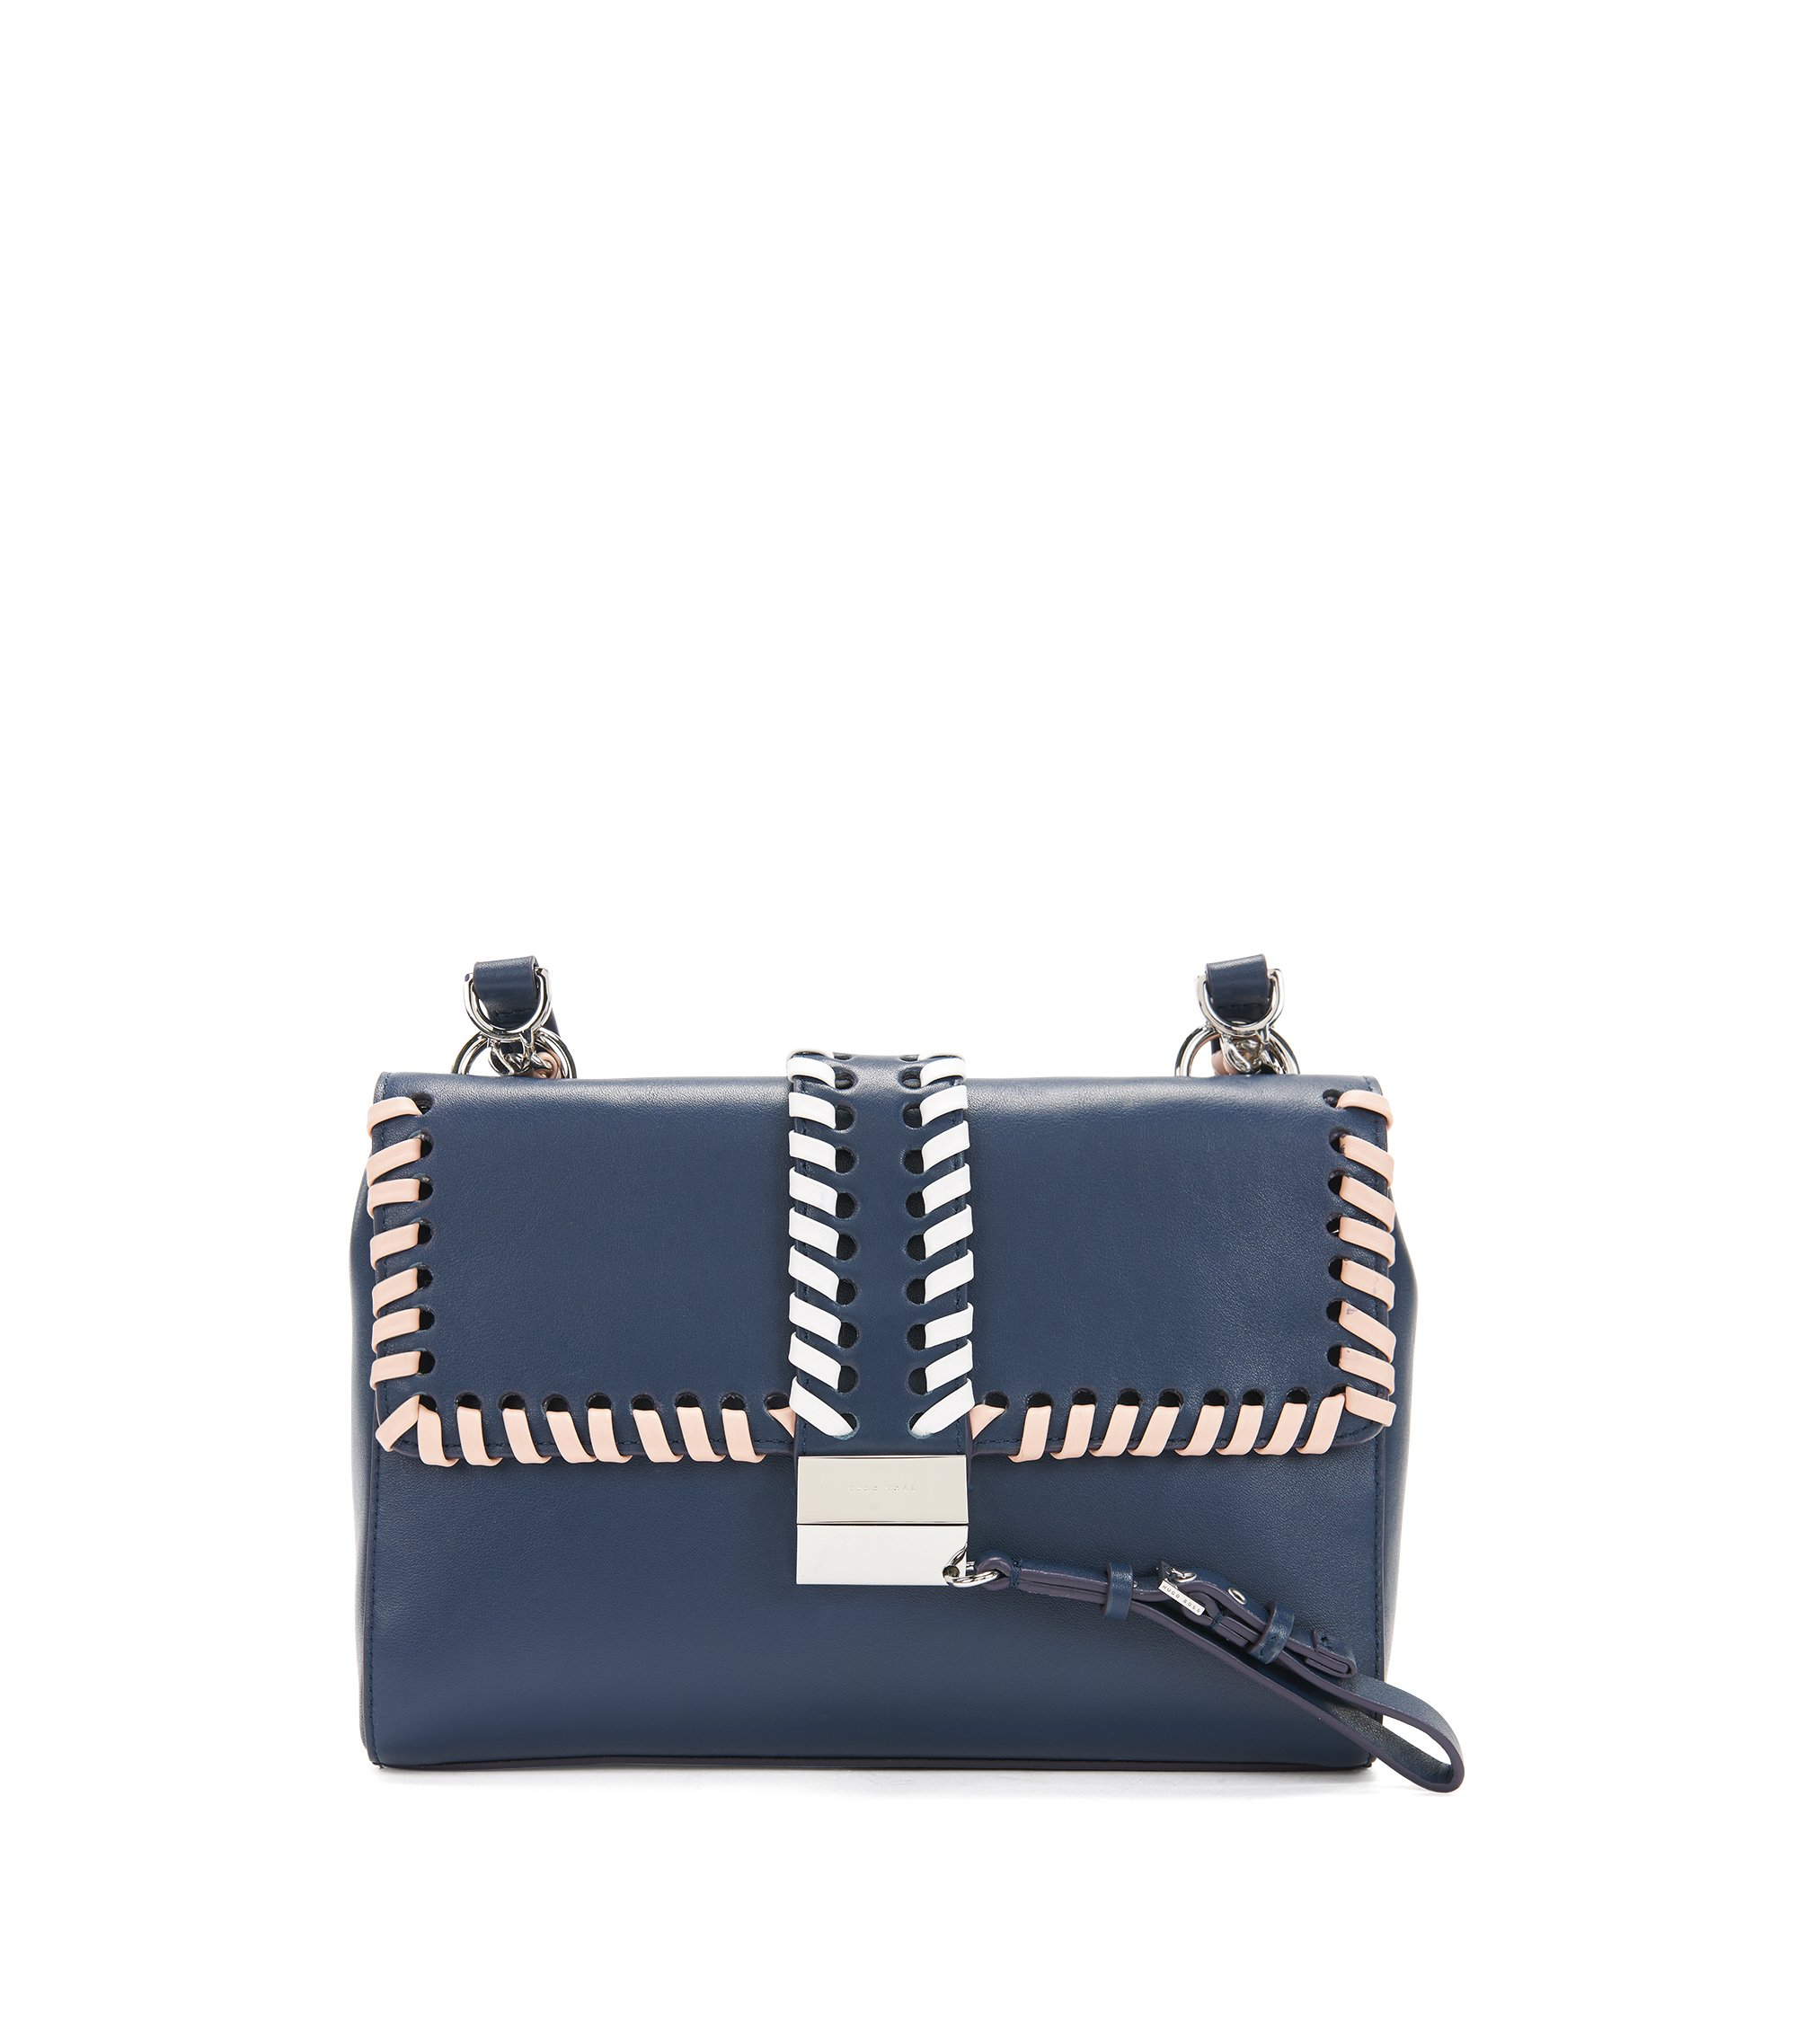 Woven-detail leather shoulder bag with lock closure, Blue